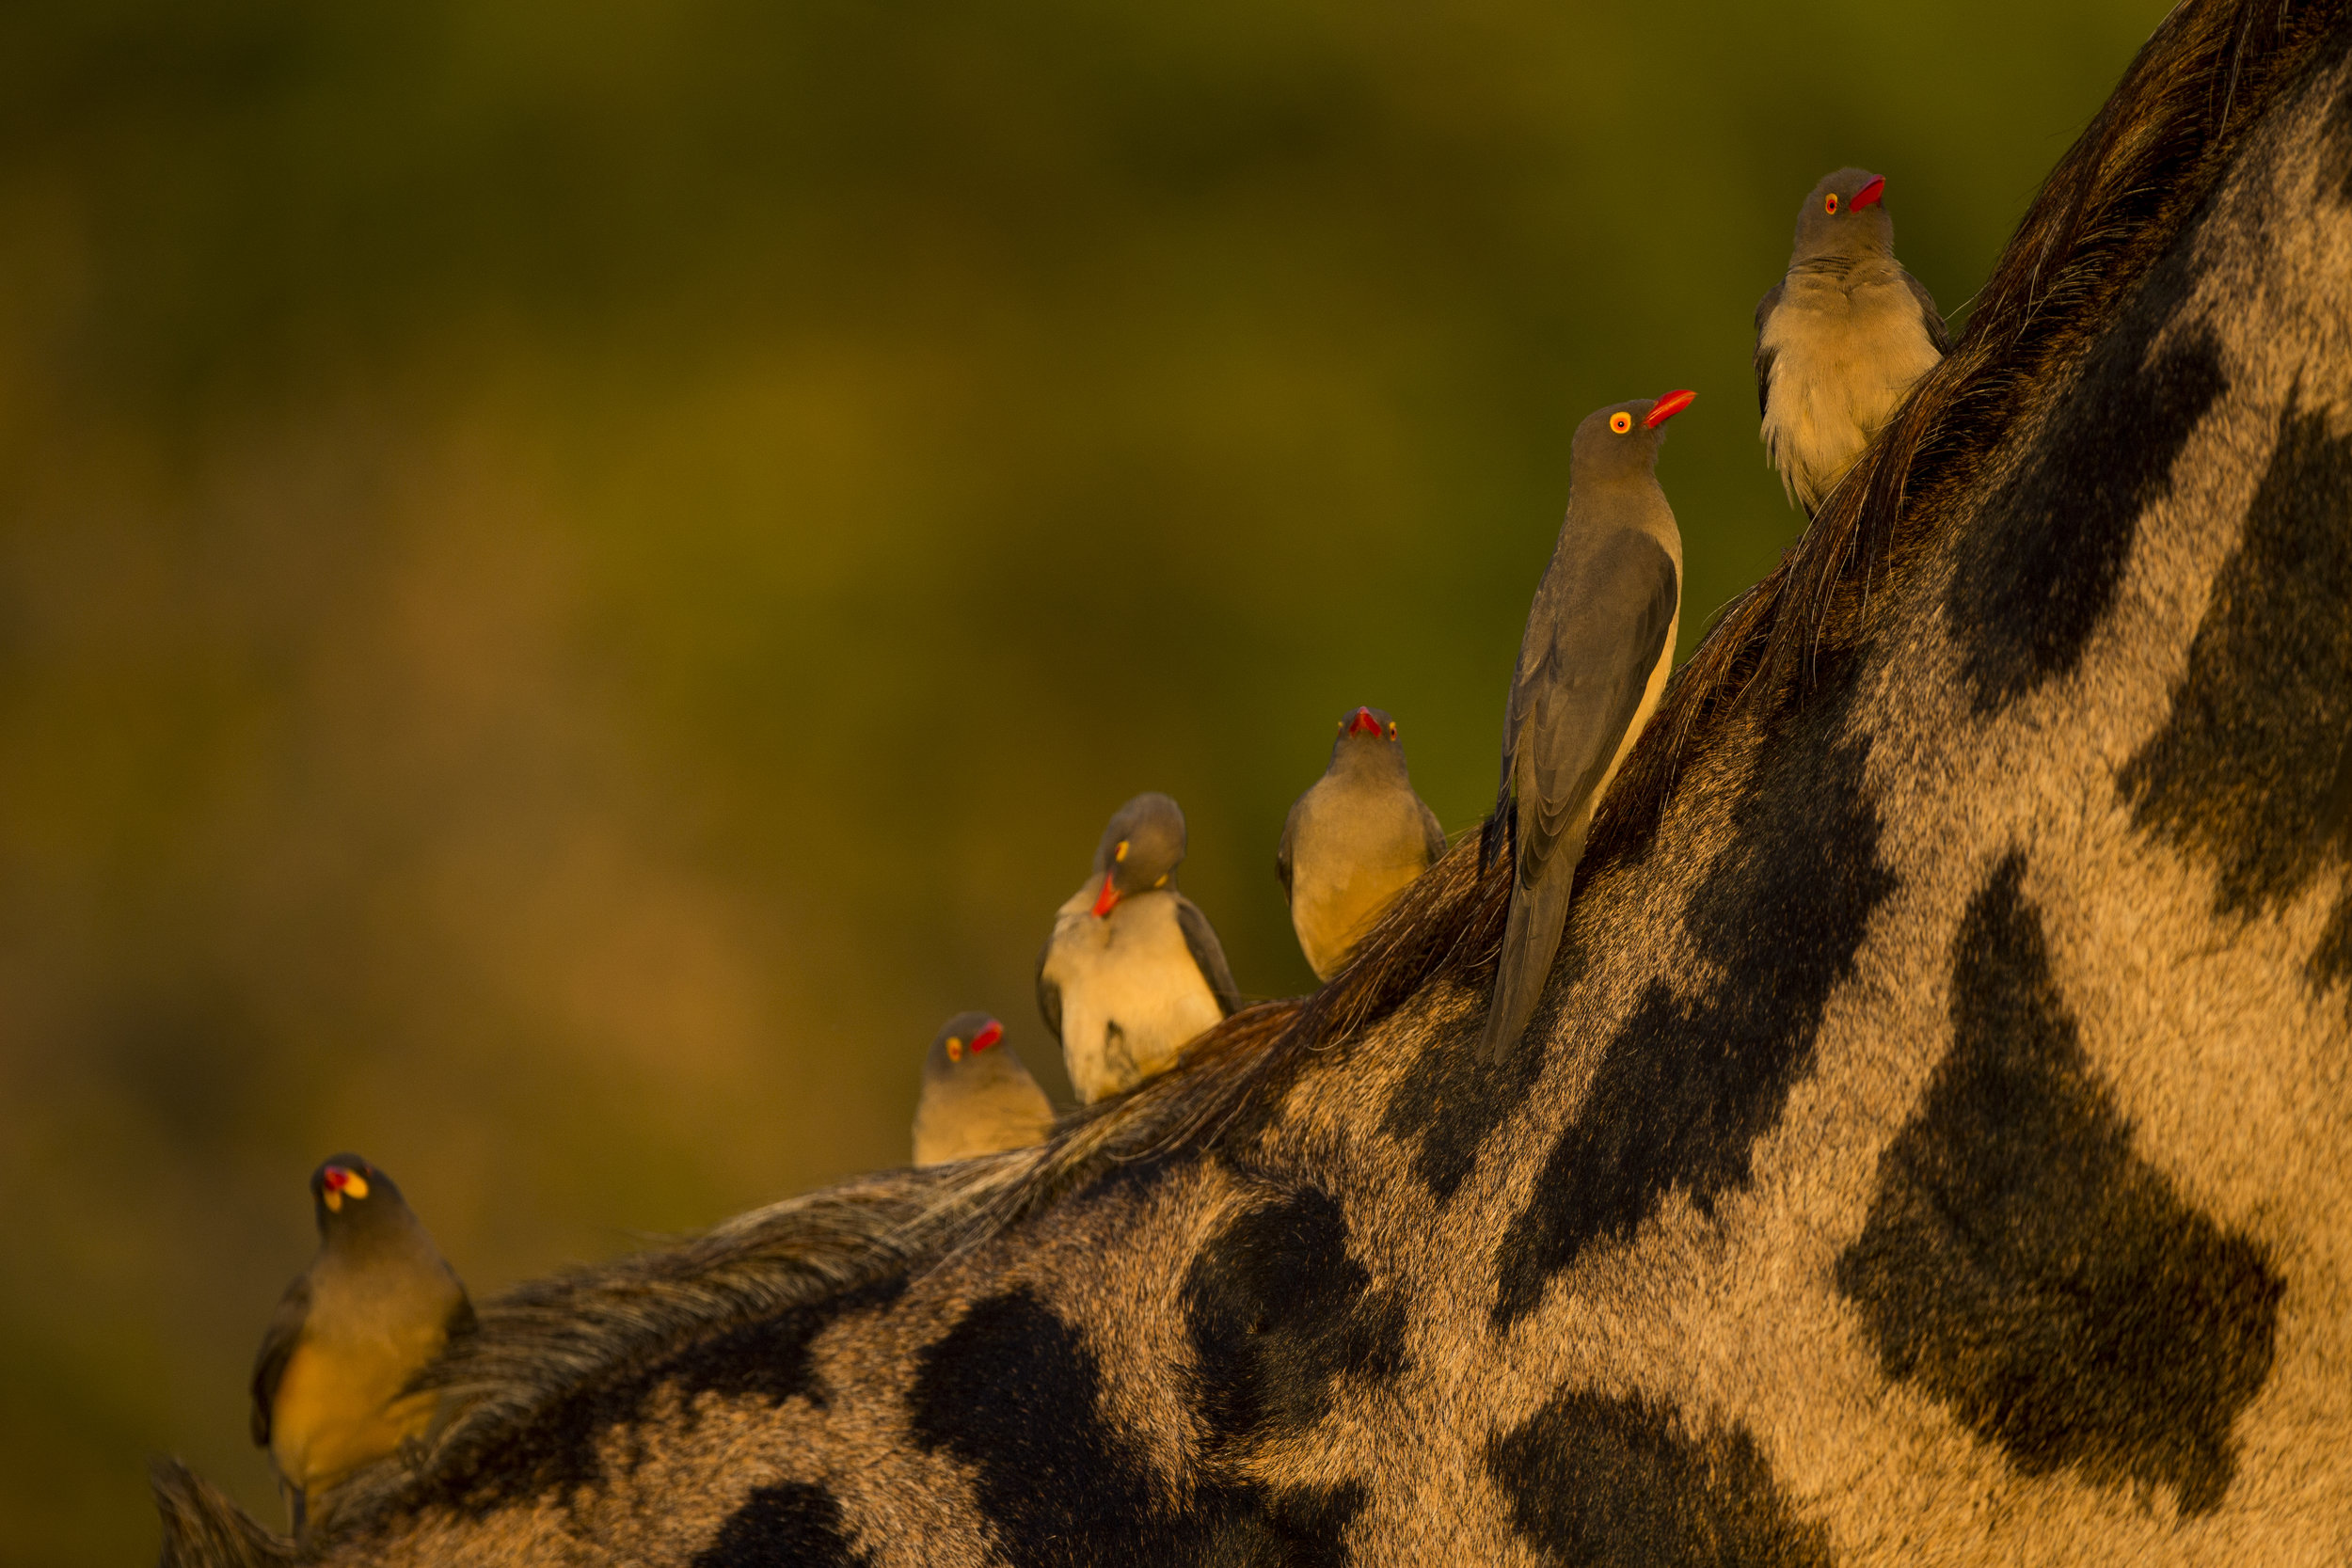 Red billed oxpeckers on a Thornicroft giraffe.